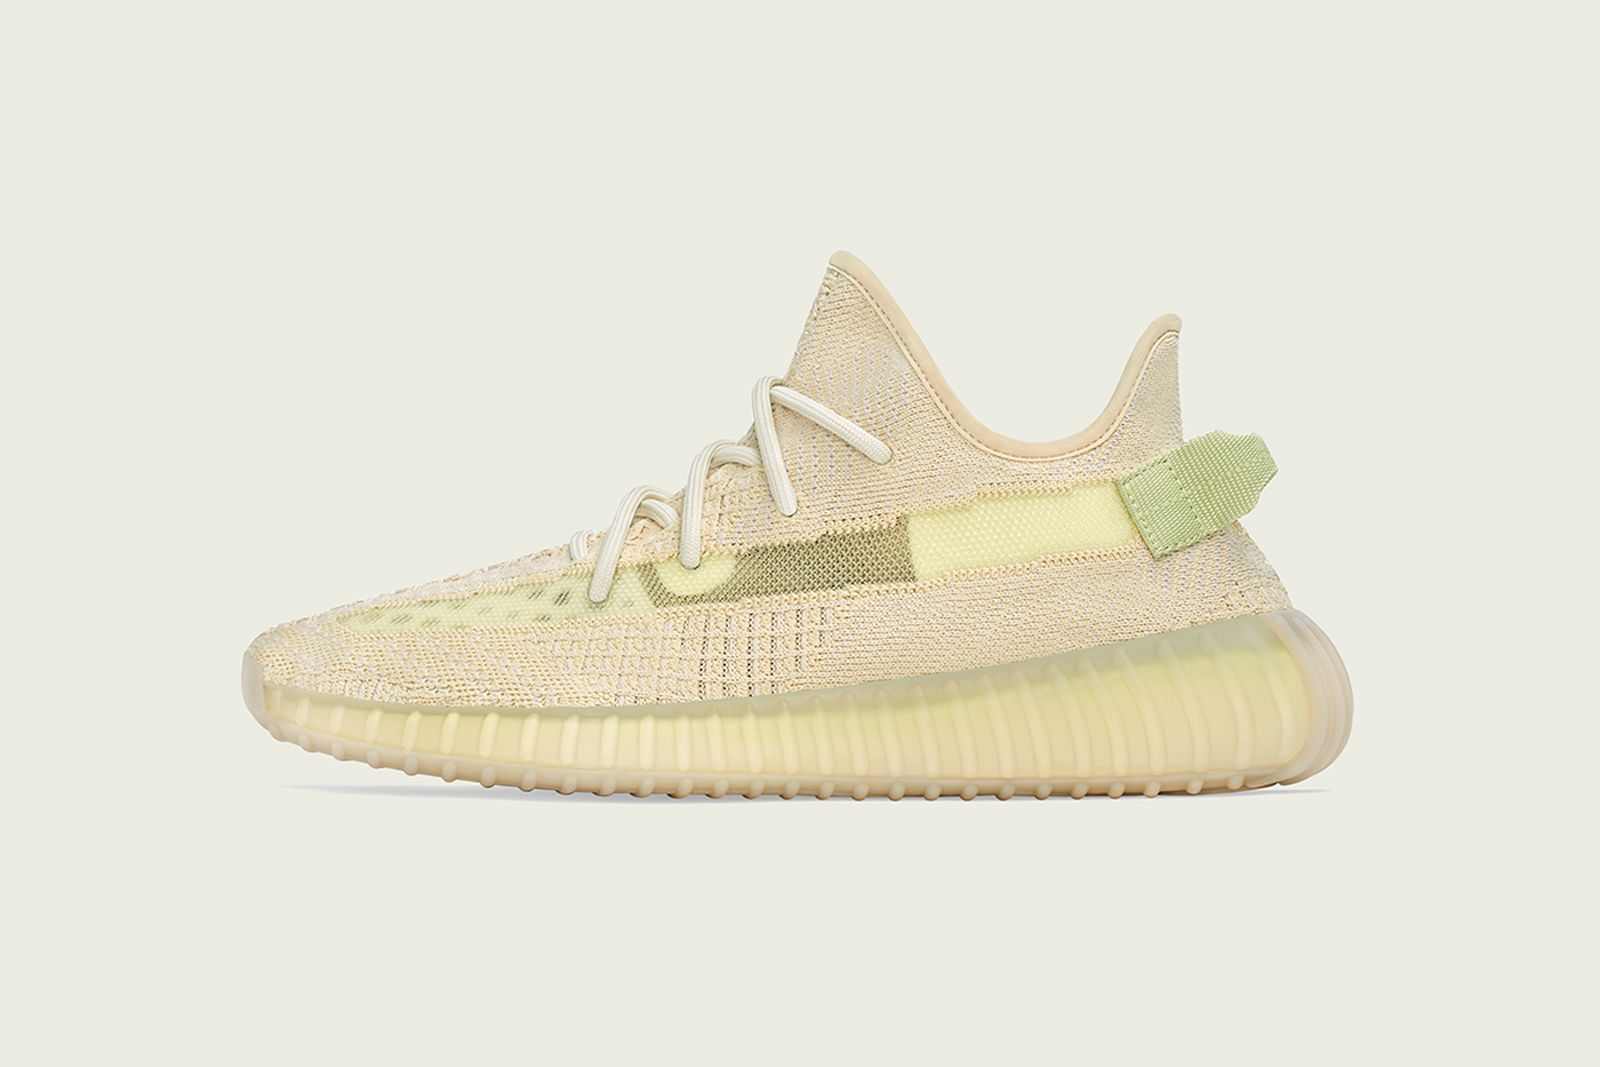 Adidas Yeezy Boost 350 V2 Flax Where To Buy Today